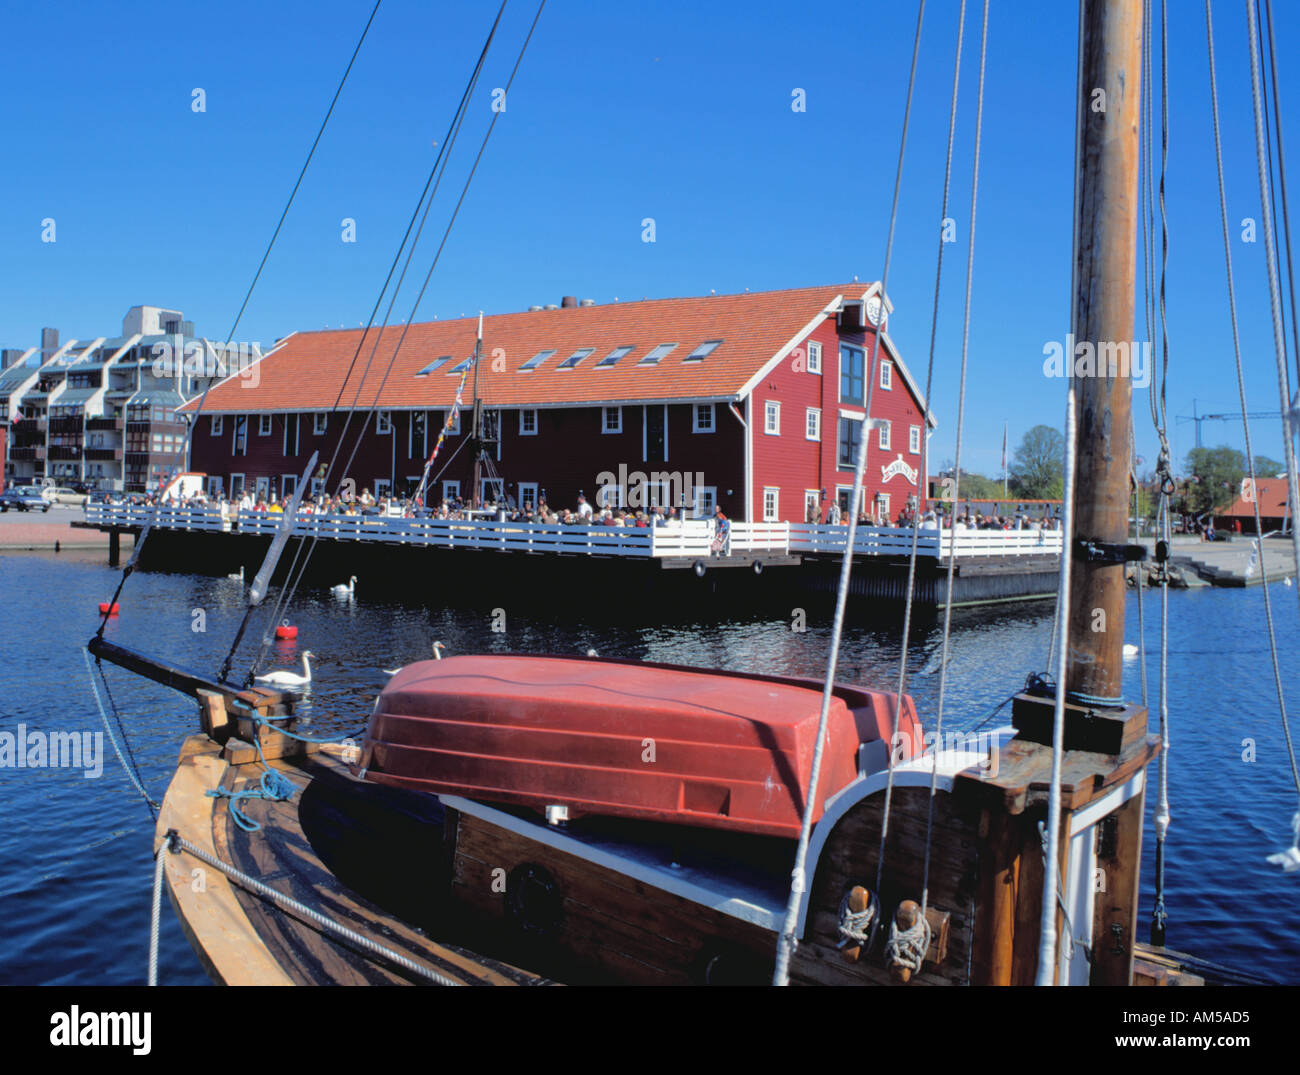 Picturesque converted old timber warehouse (now a cafe restaurant) seen over the harbour, Kristiansand, Vest-Agder, Norway. - Stock Image